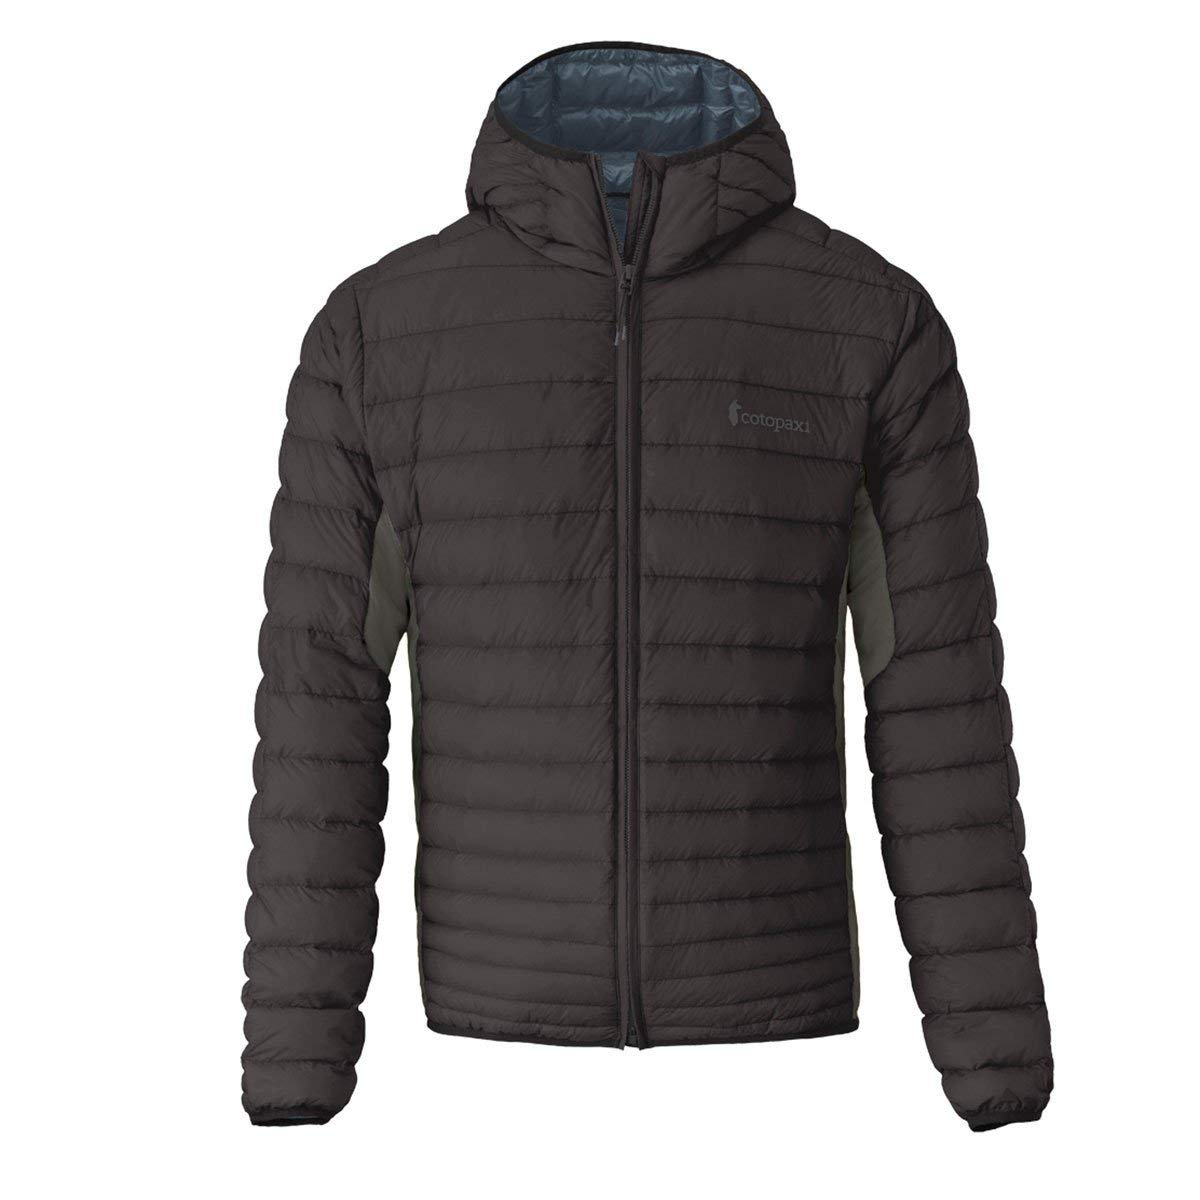 2d4b2c0058a Get Quotations · Cotopaxi Fuego - Men's 800 Fill Down Puffy Jacket with  Polartec Alpha Technology